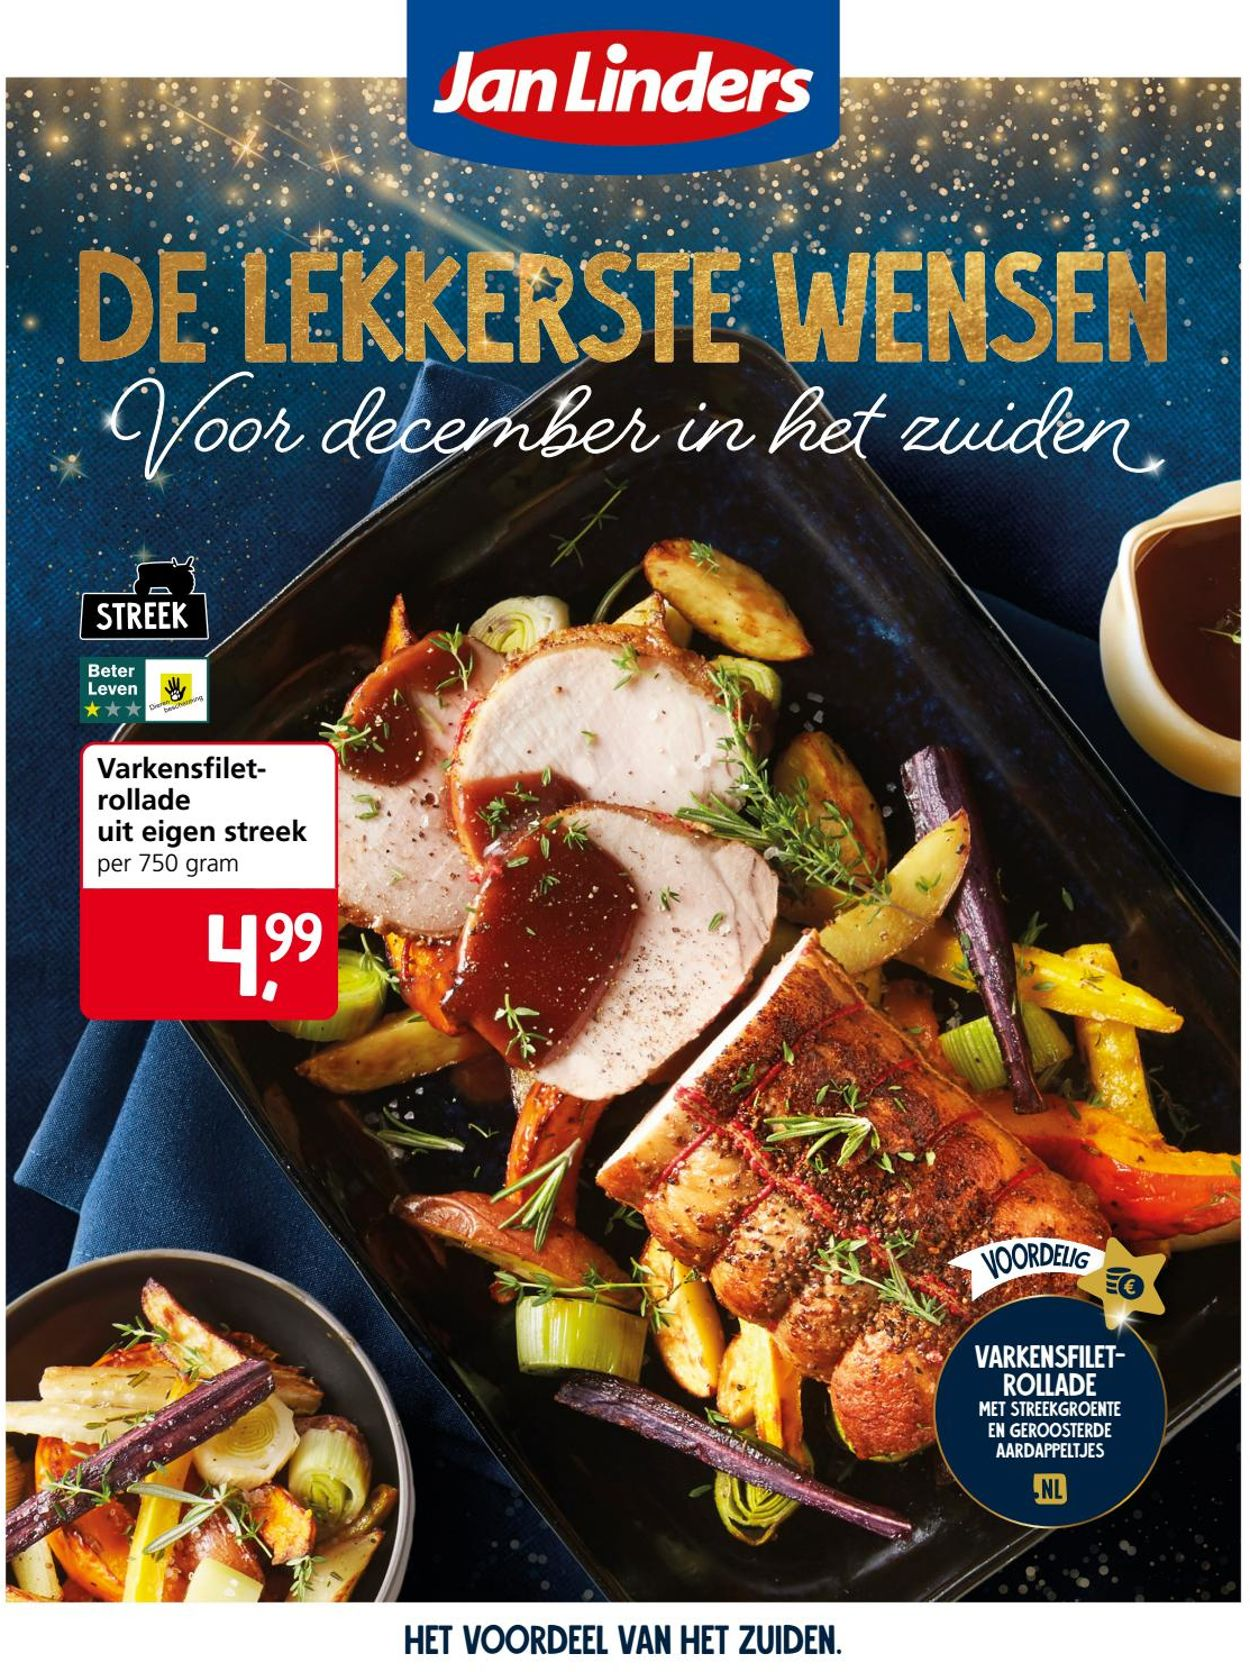 Jan Linders Kestmagazine 2020 Folder - 23.11-27.12.2020